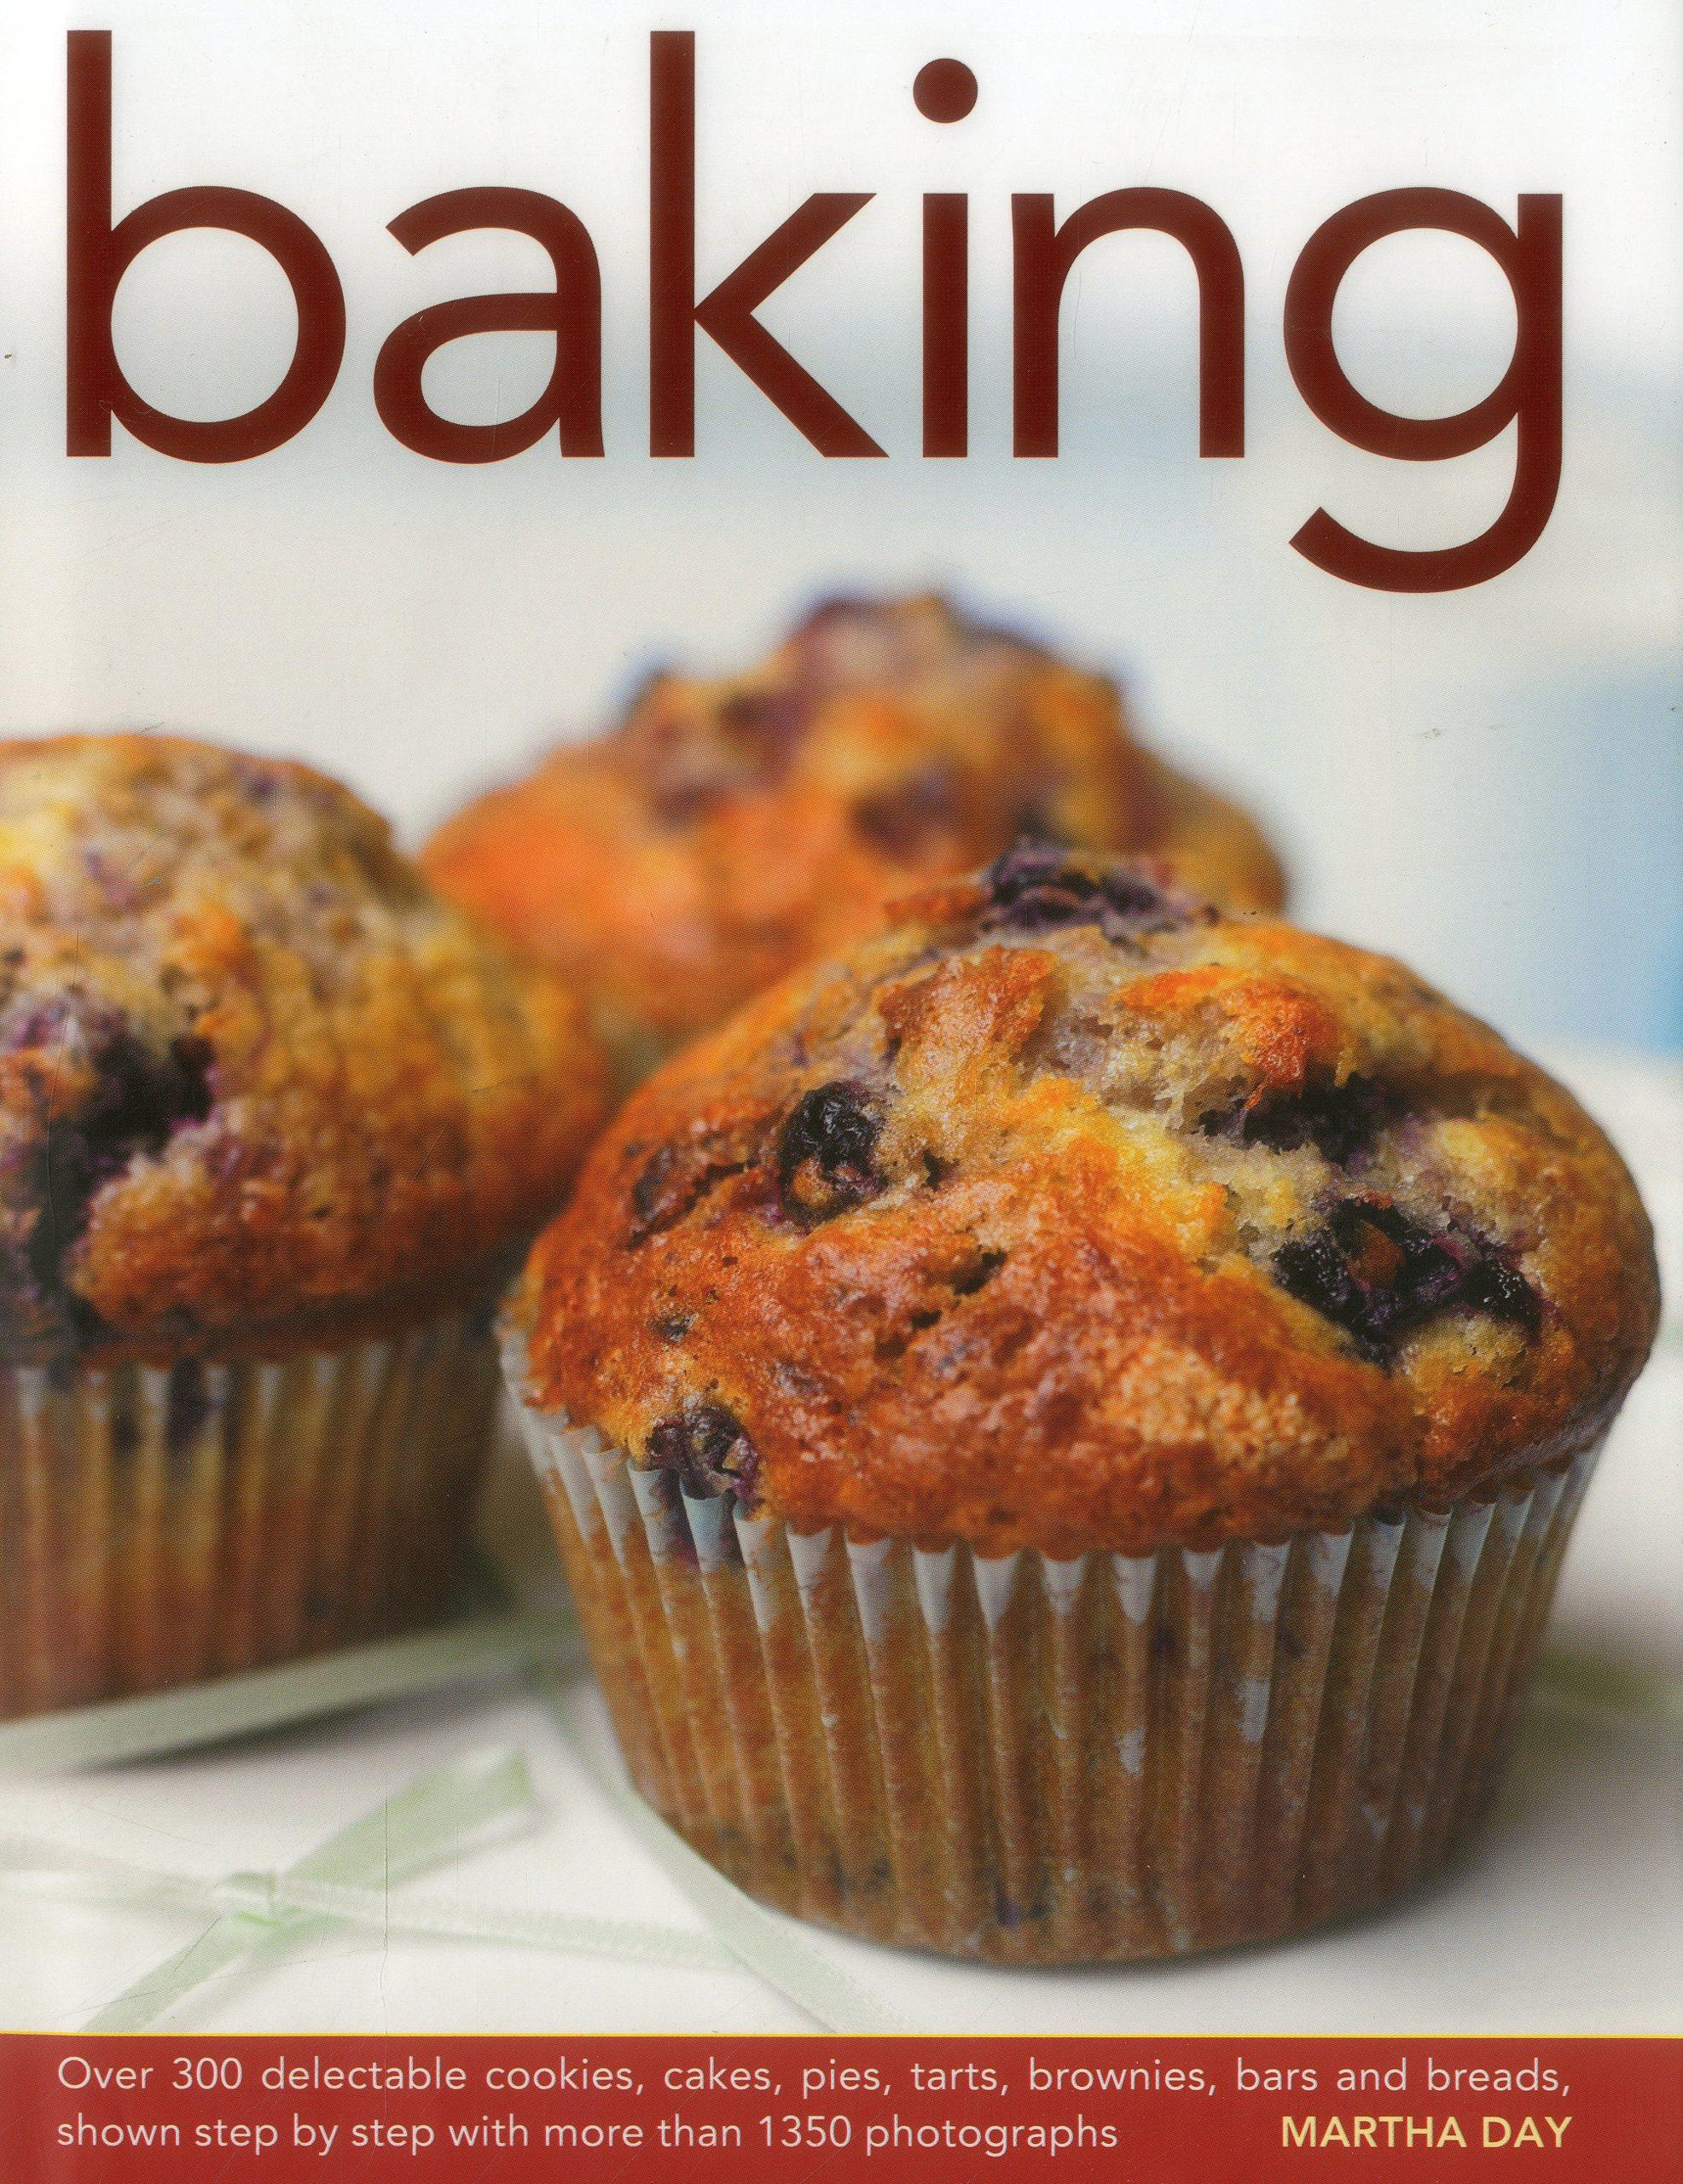 Baking: Over 300 delectable cookies, cakes, pies, tarts, brownies, bars and breads, shown step by step with more than 1350 photographs PDF